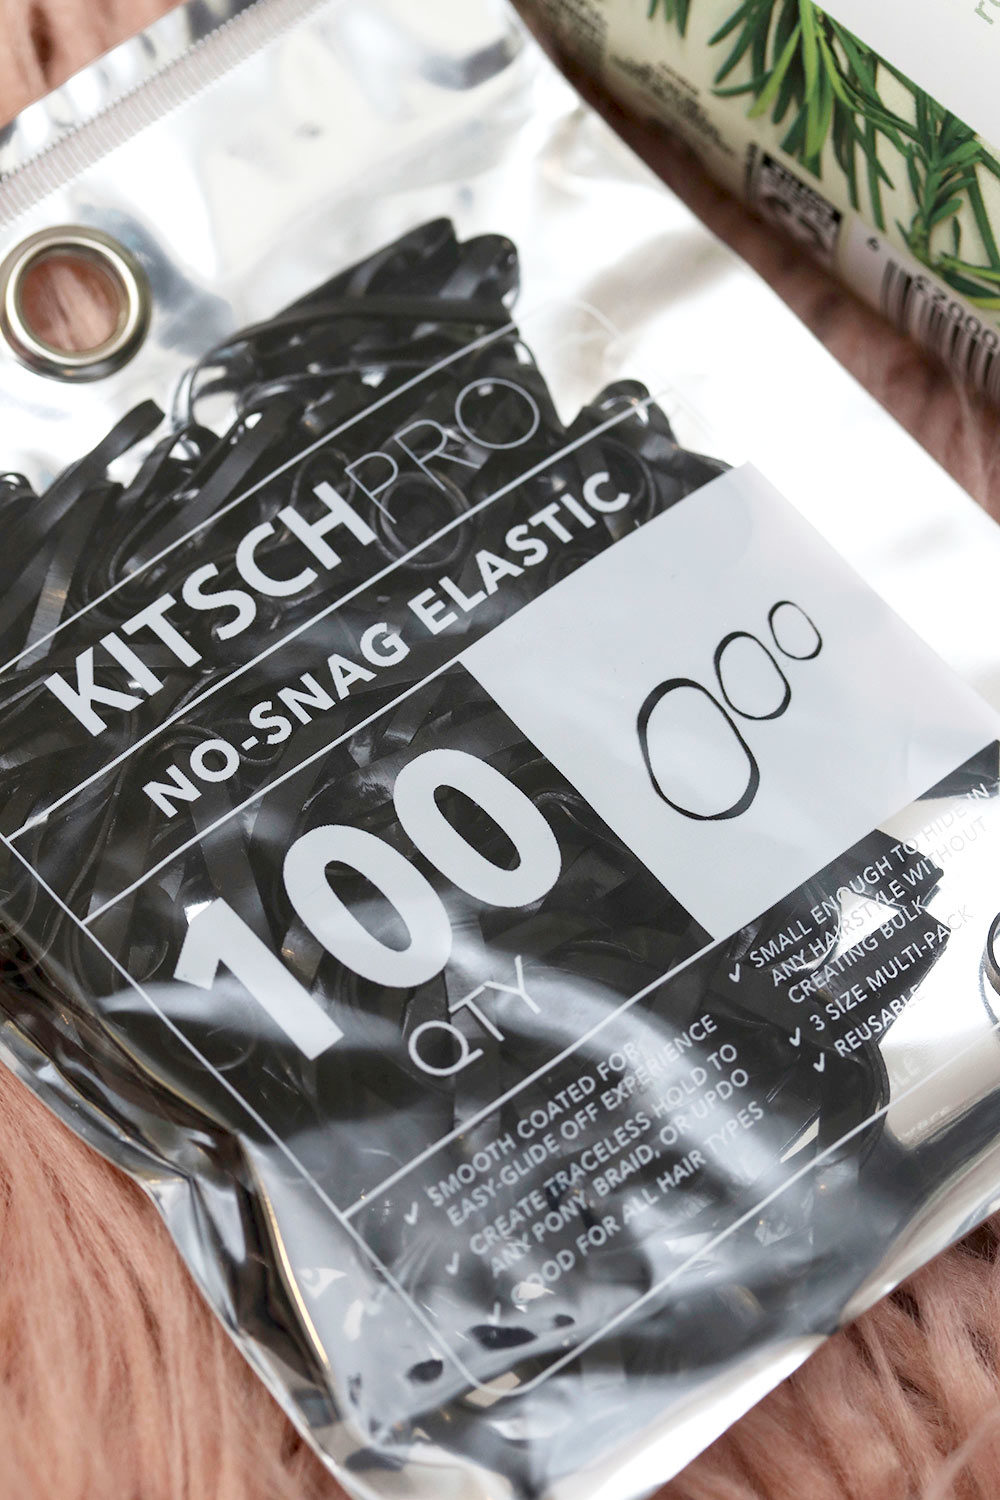 kitsch no snag elastics